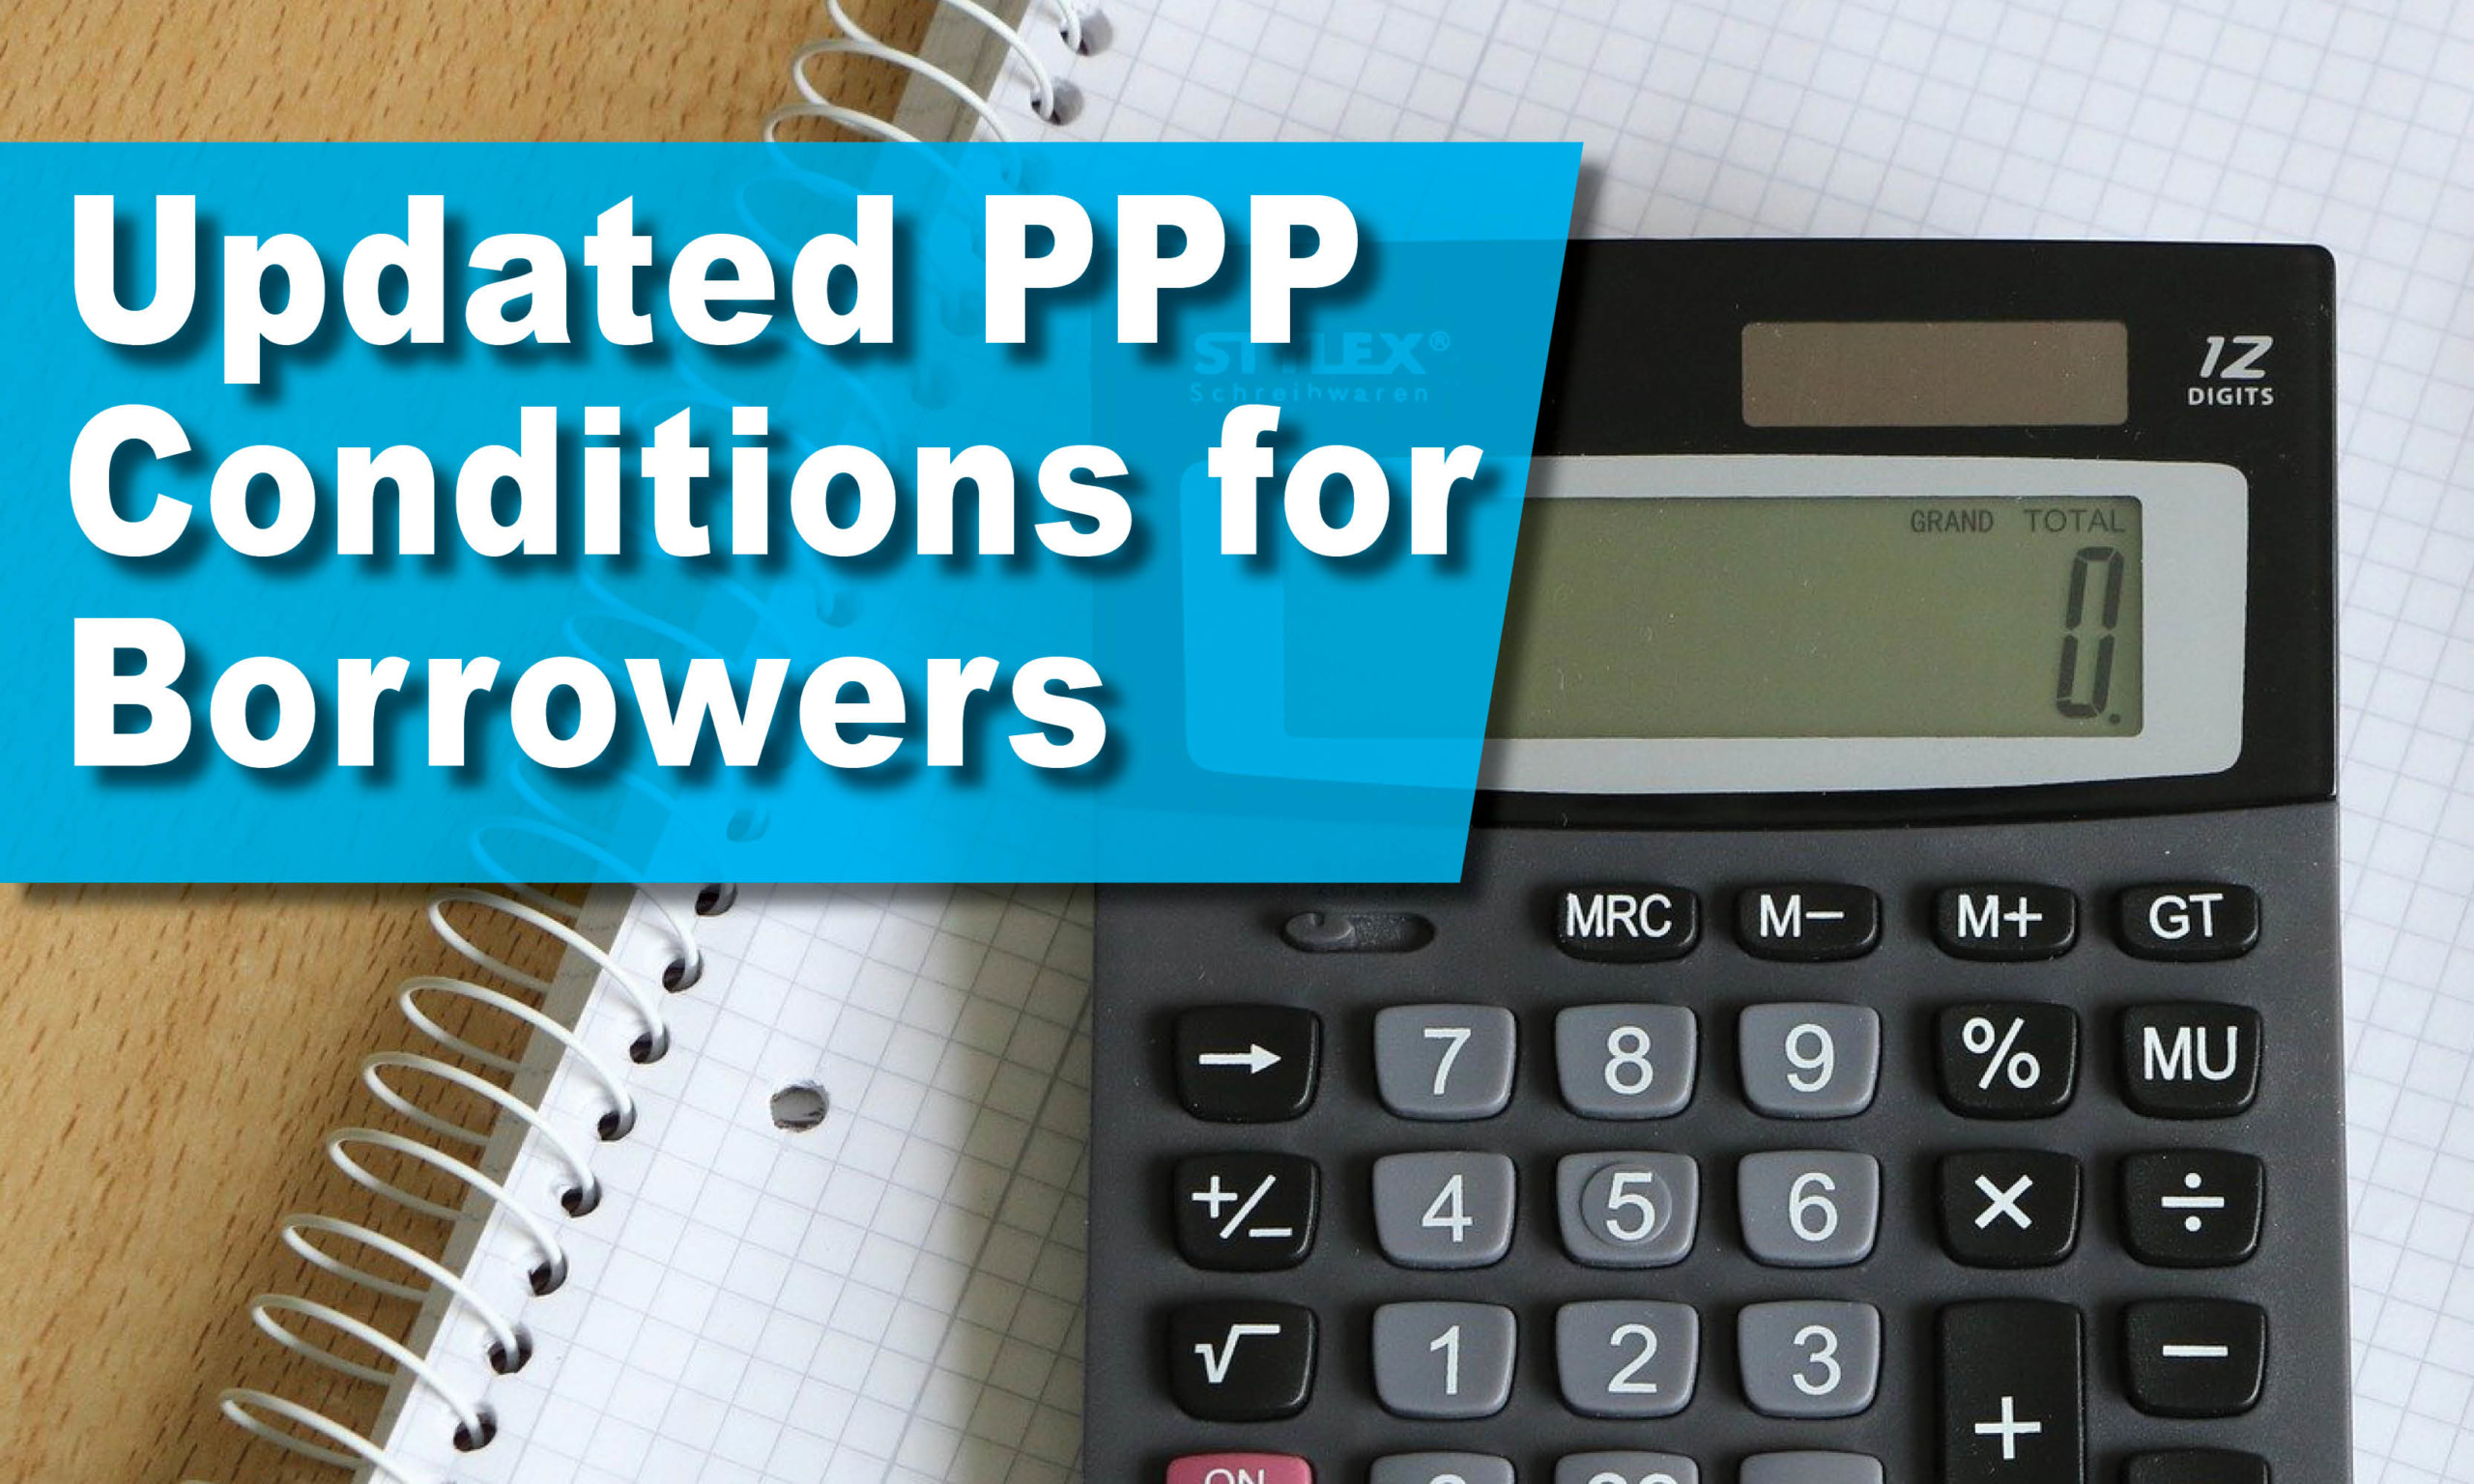 Updated PPP Conditions for Borrowers